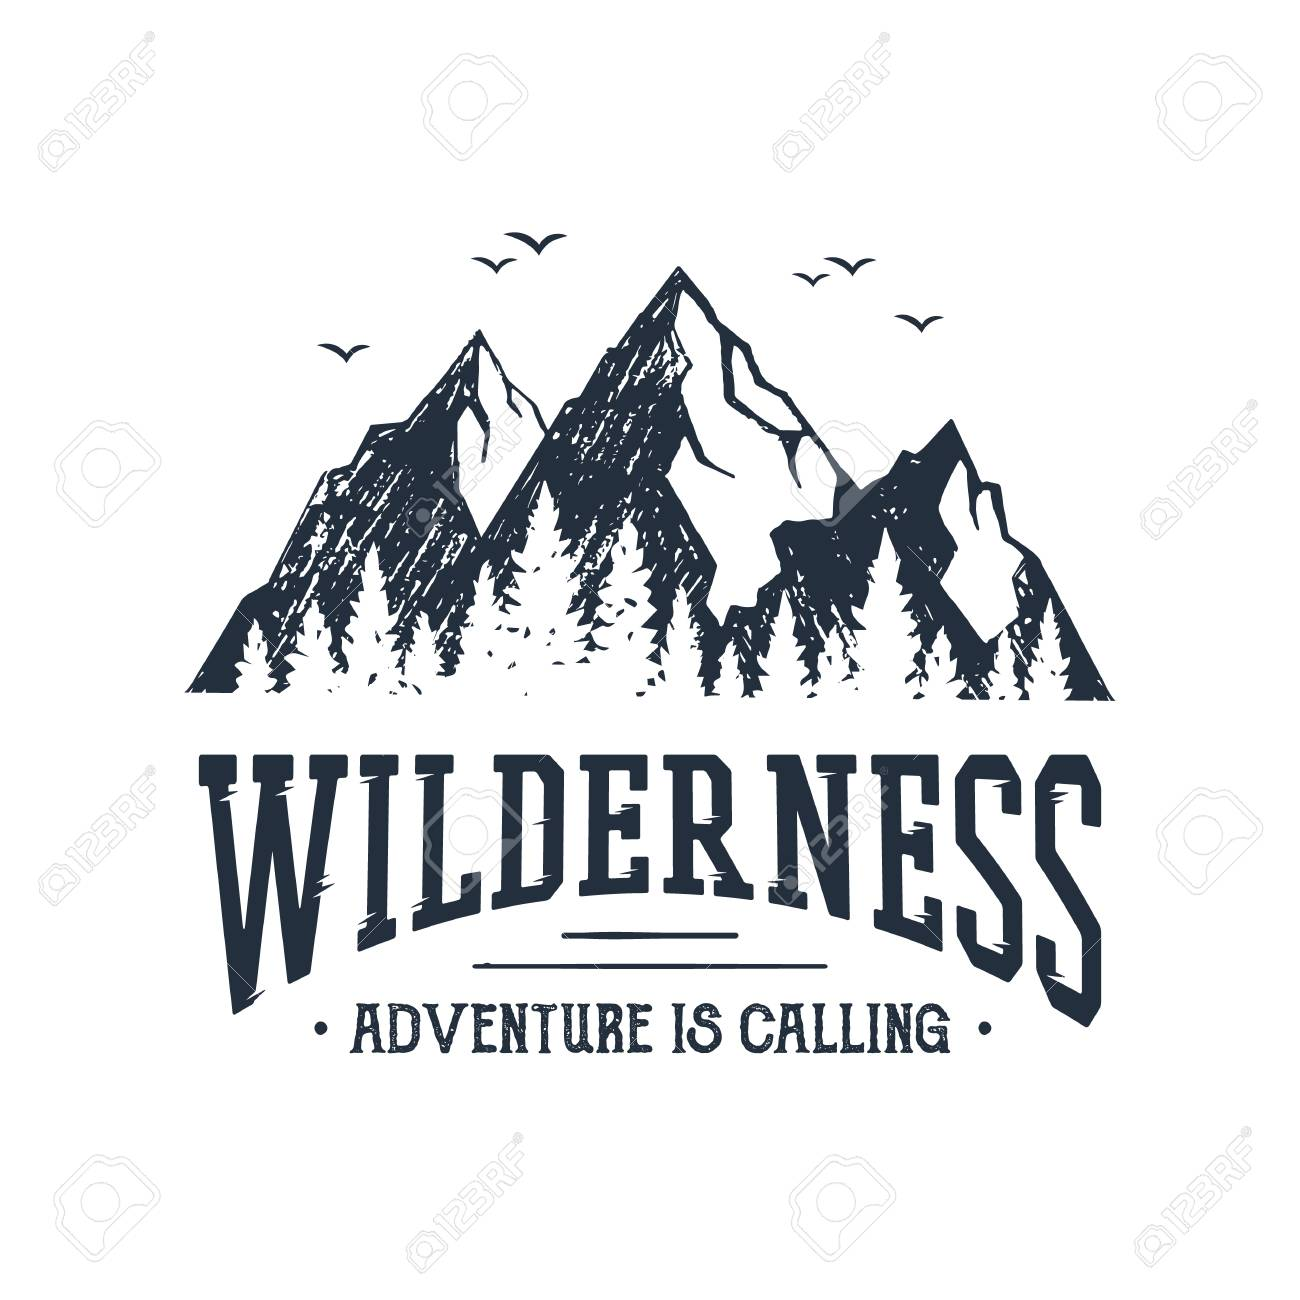 """Hand drawn inspirational label with mountains and pine trees textured vector illustrations and """"Wilderness. Adventure is calling"""" lettering. - 91098058"""